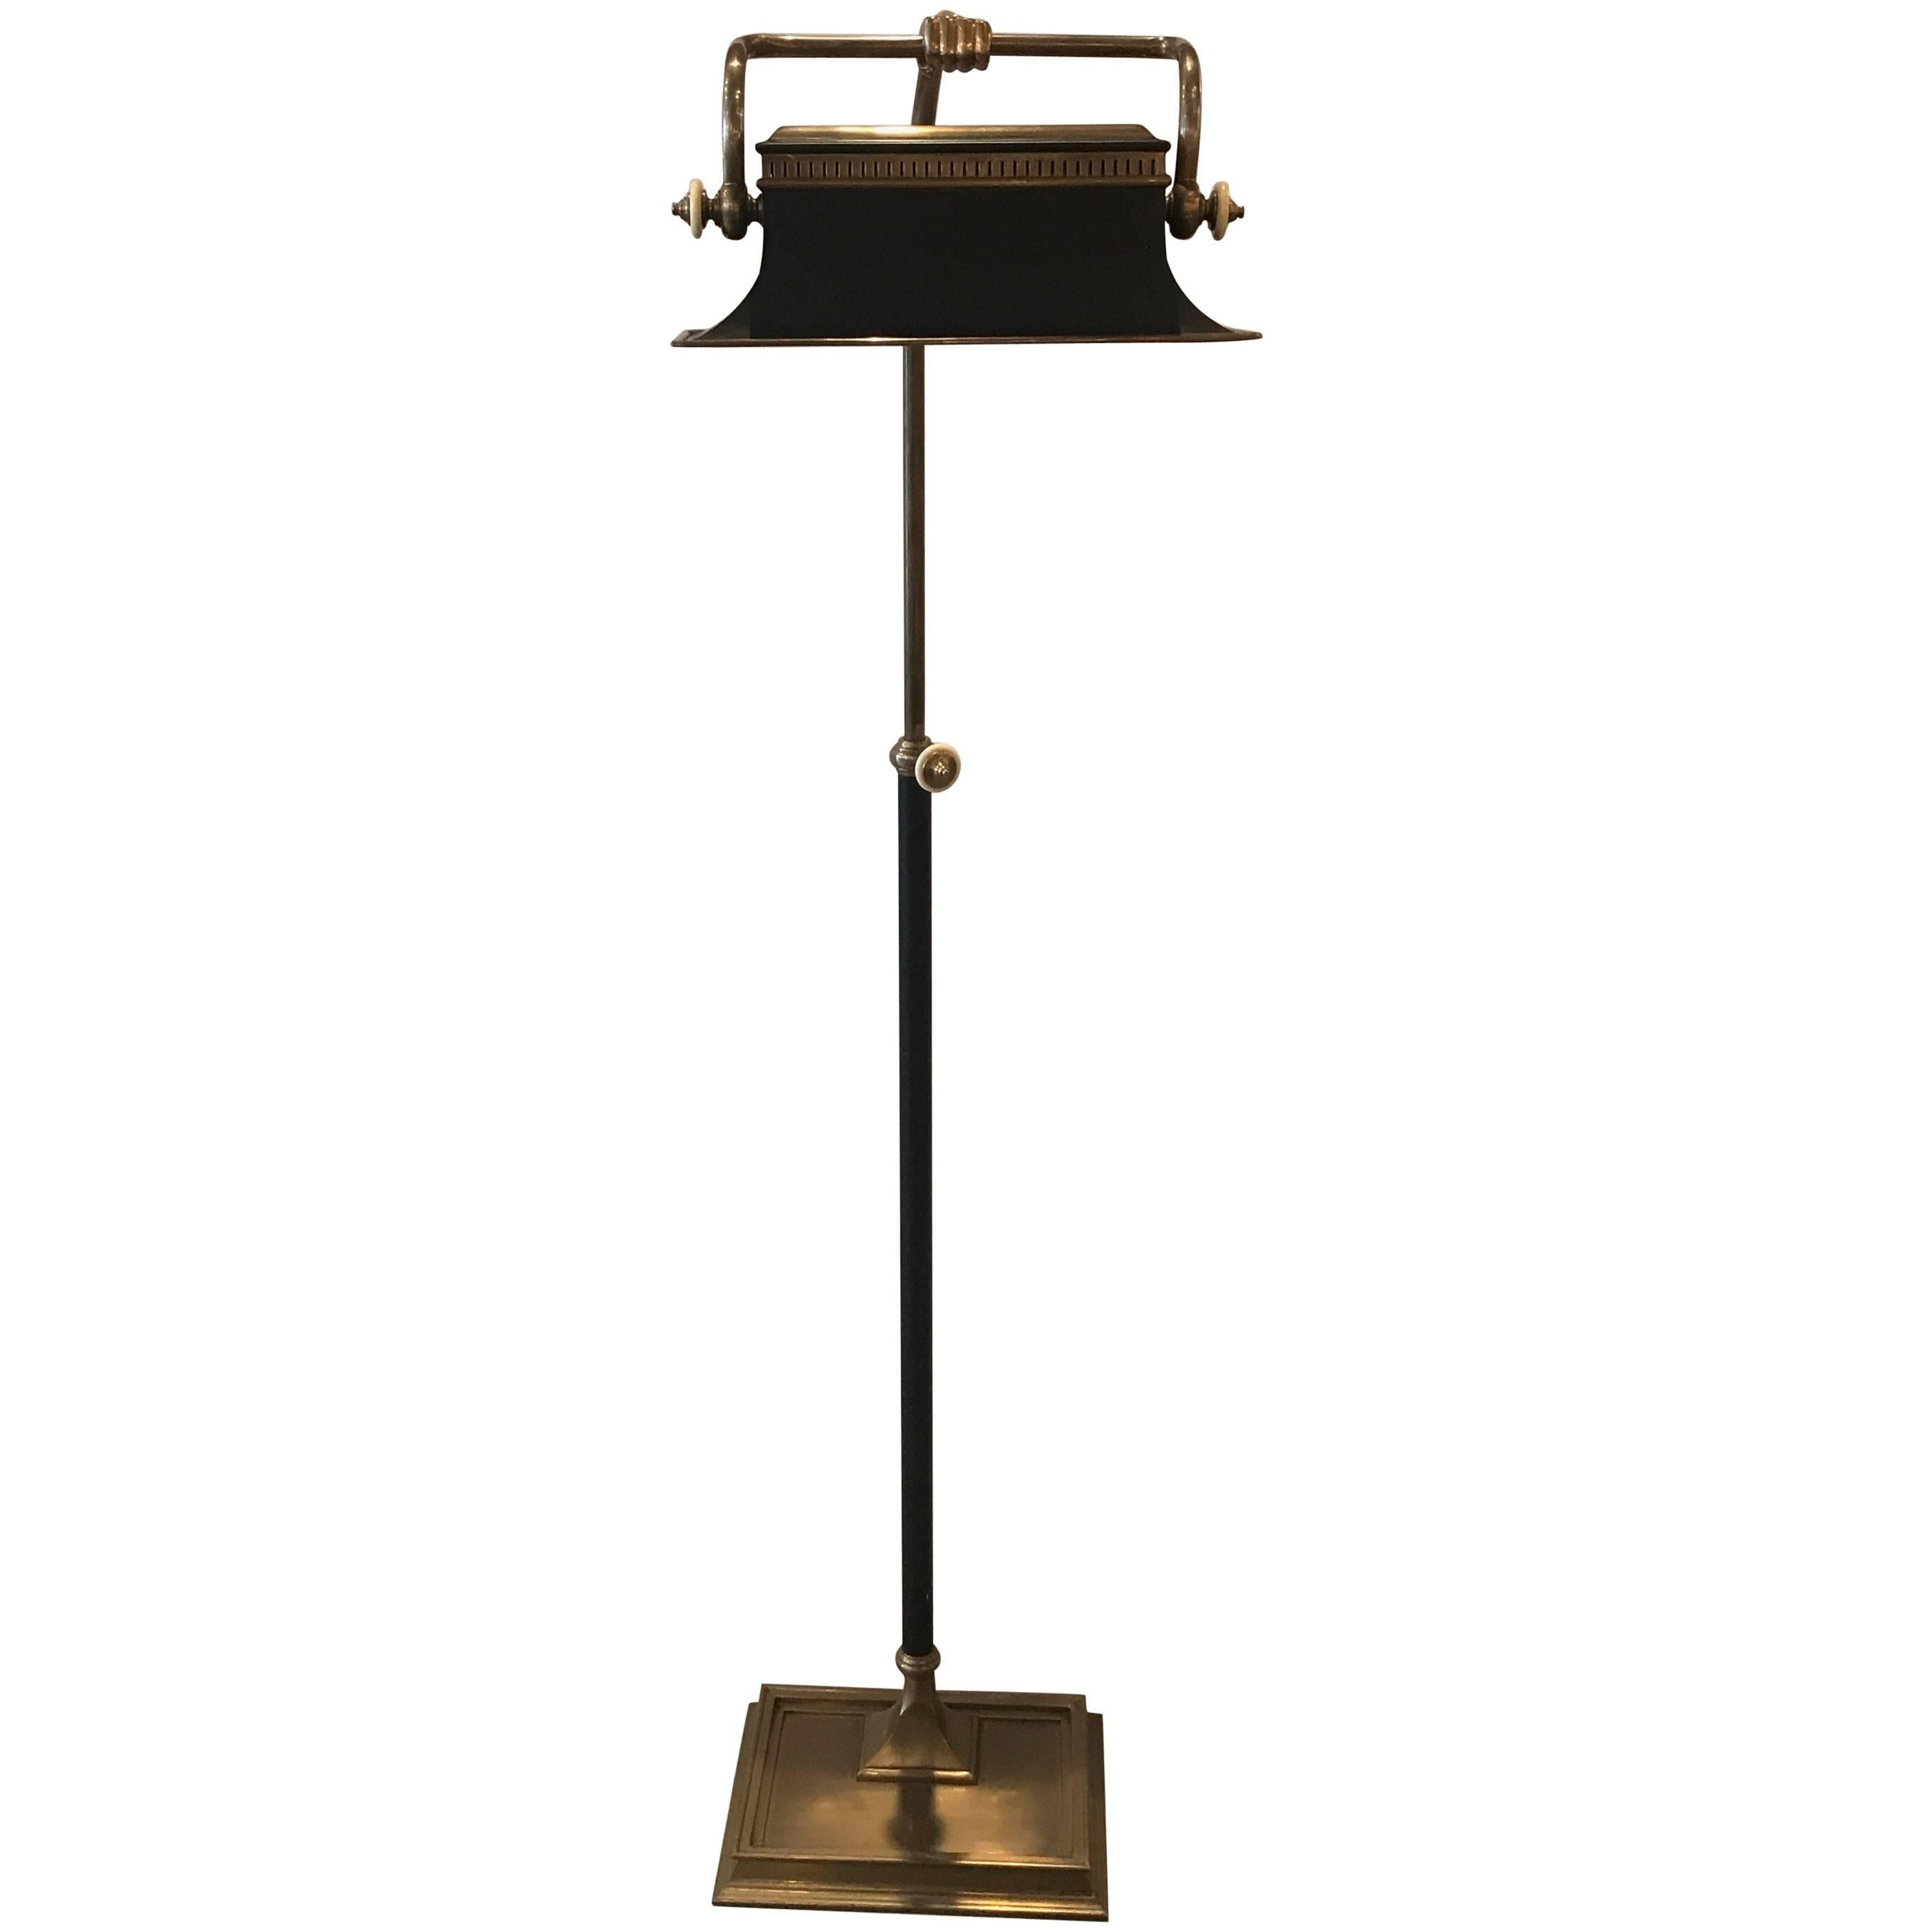 Chapman Manufacturing Company Floor Lamps - 21 For Sale at 1stdibs